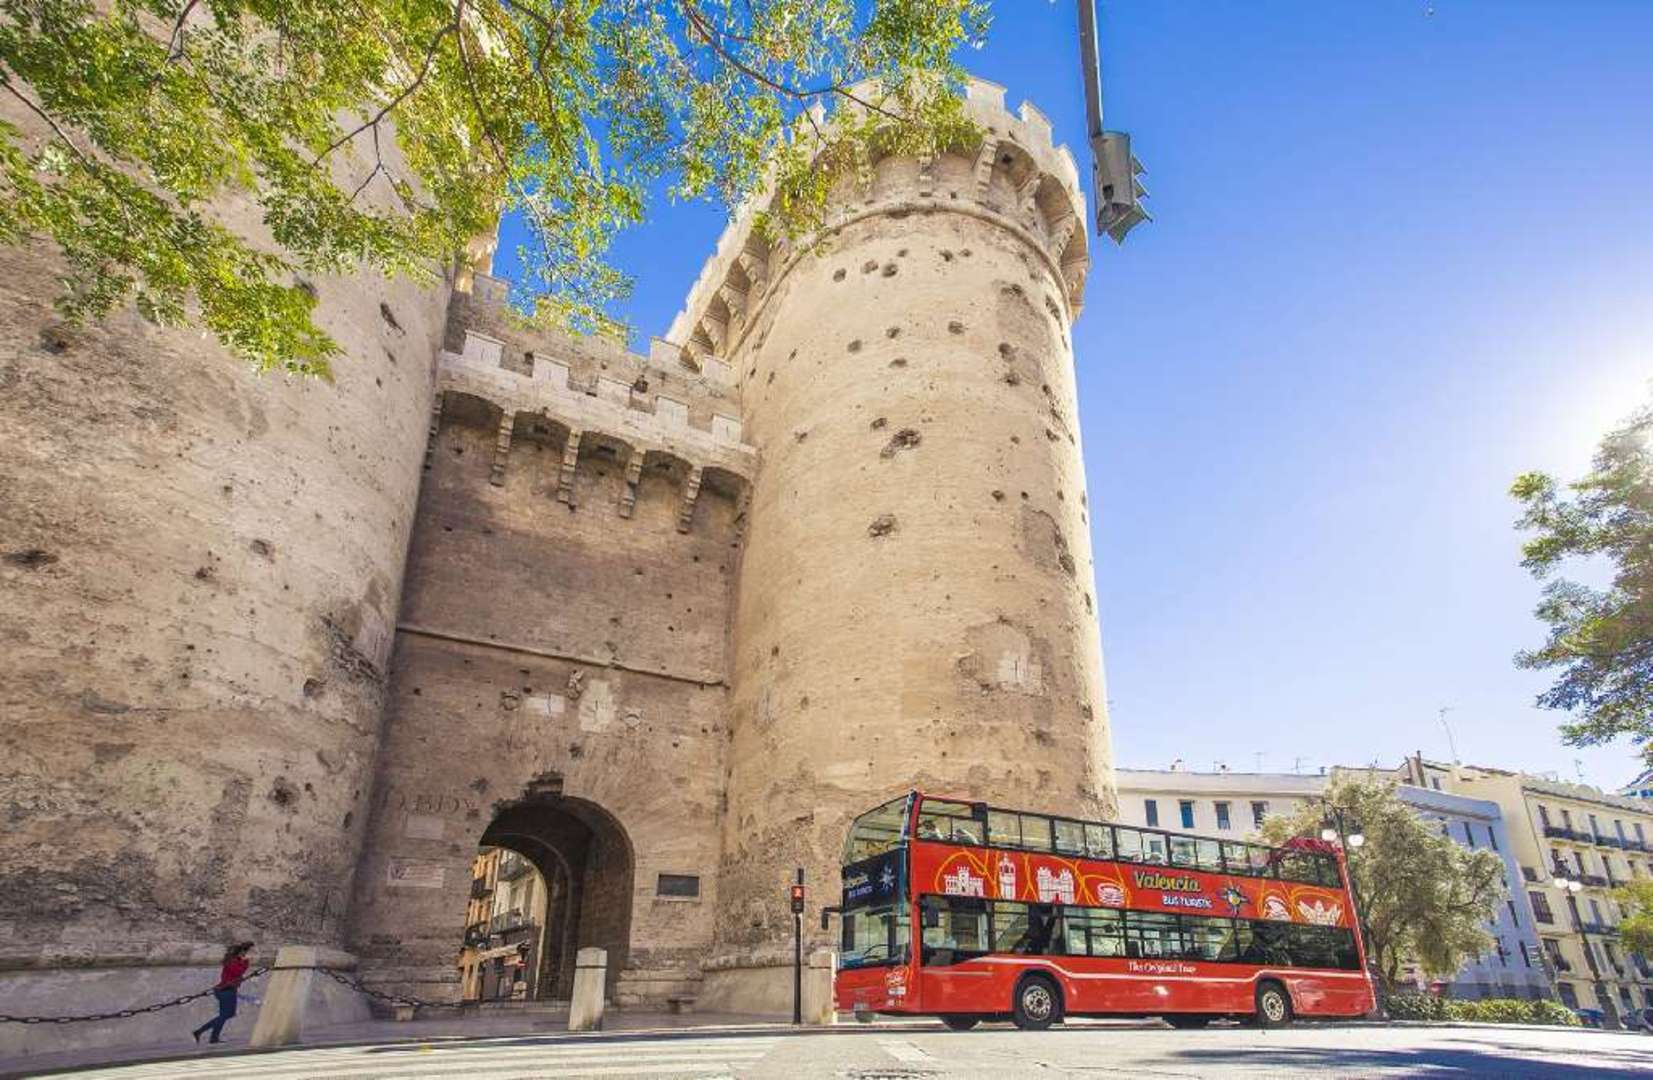 VALENCIA BUS TURISTIC<br /><strong>Billete 24h  <strong class='extra_info_articulo'>- desde 17.00 €  </strong></strong>